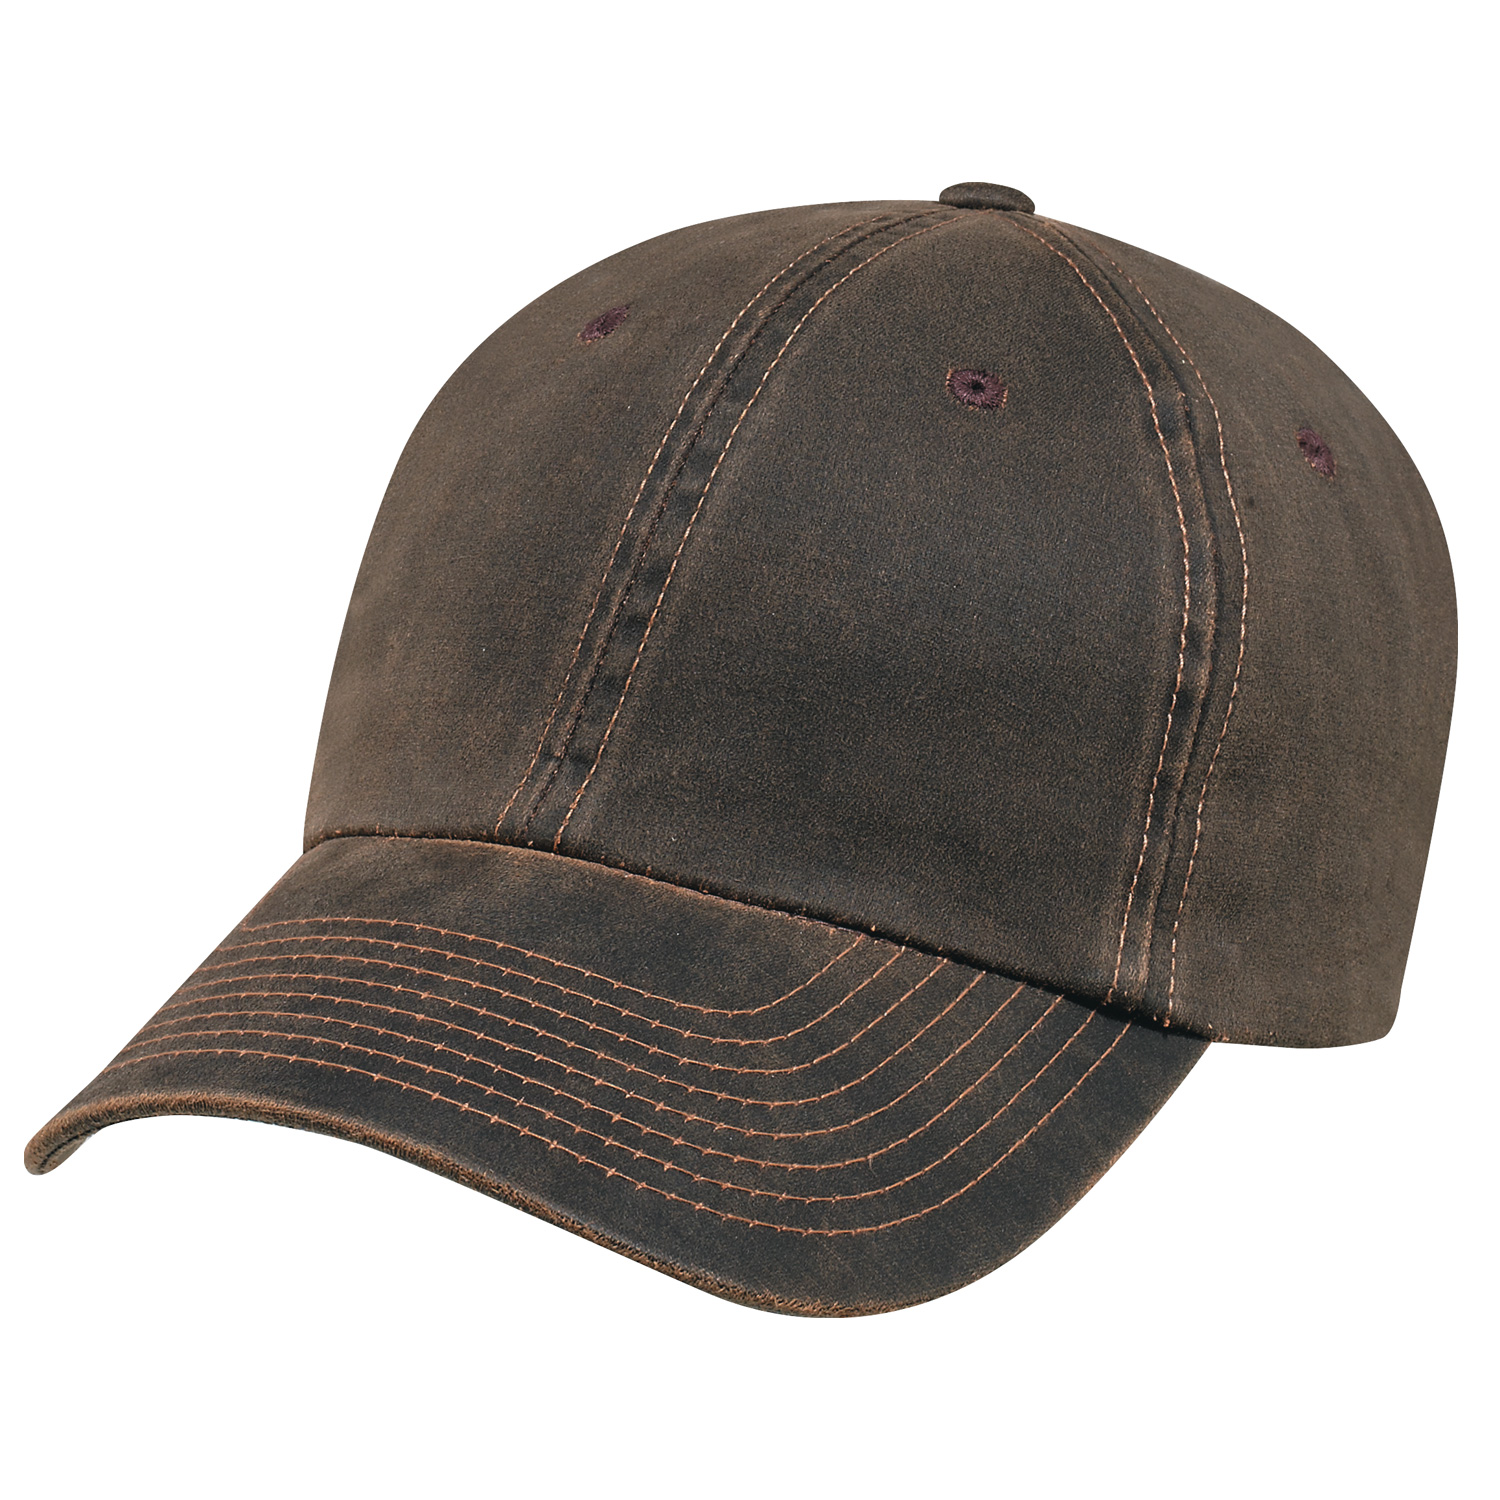 V7J470 - Distressed Ball Cap